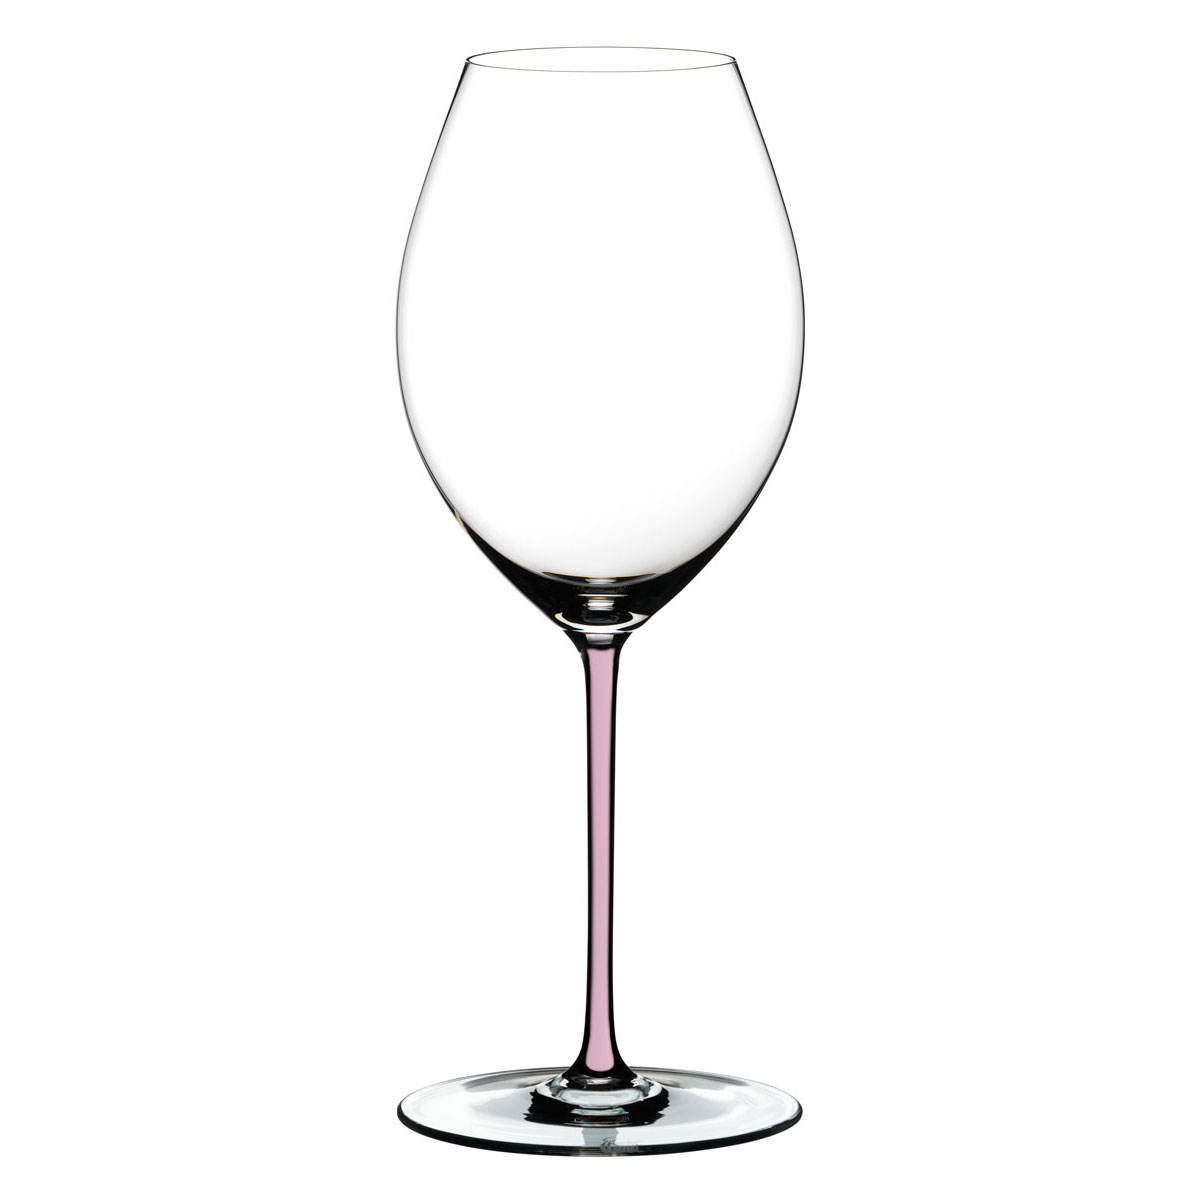 Riedel Fatto A Mano Old World Syrah Crystal Wine Glass, Pink